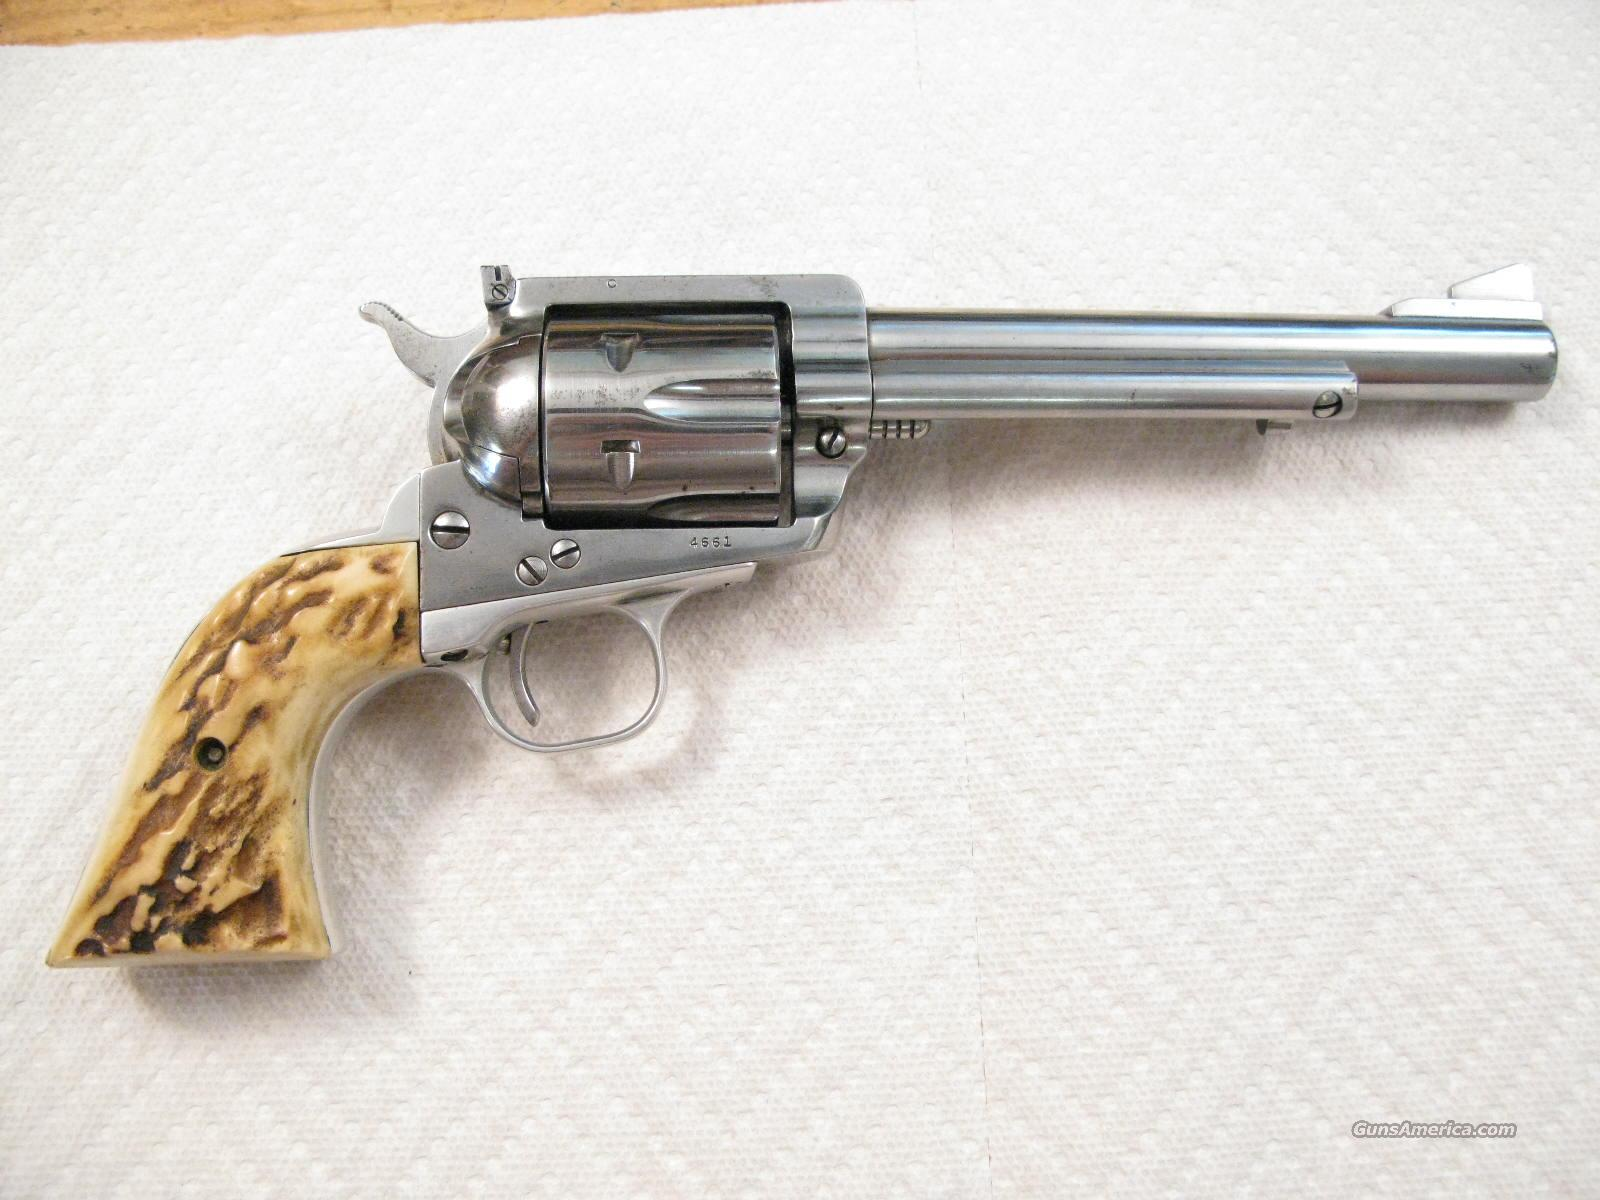 "Blackhawk Flat Top  6 1/2"" .44 Magnum Old Model From 1957  Guns > Pistols > Ruger Single Action Revolvers > Blackhawk Type"